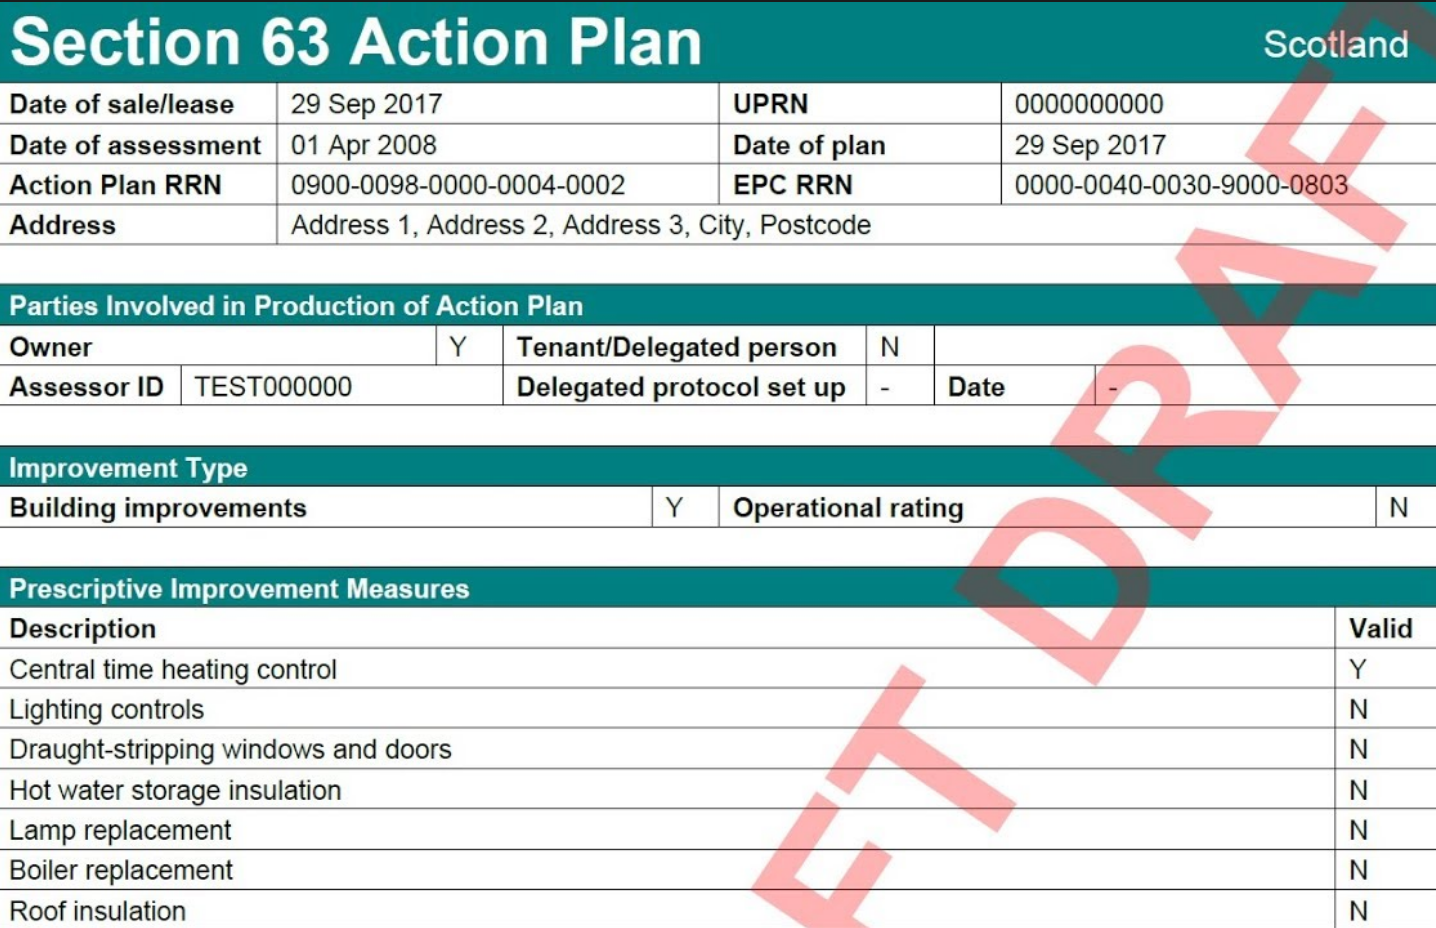 Section 63 Action Plan